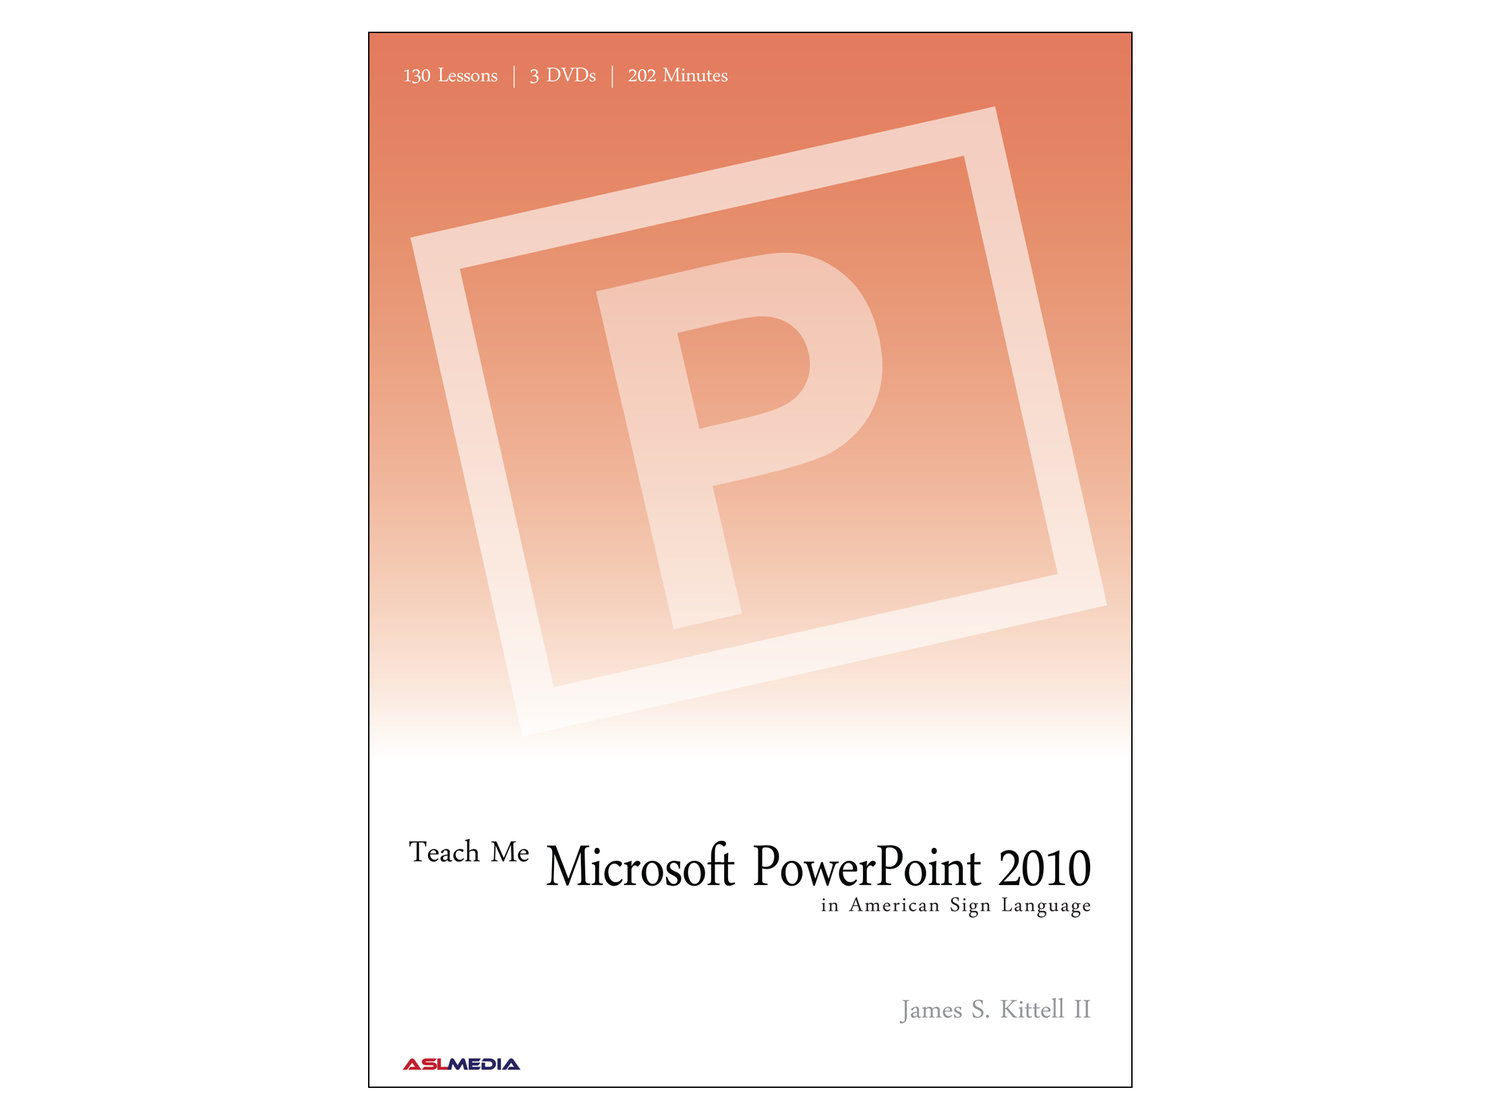 Teach Me Microsoft PowerPoint 2010 in ASL - HOME-STUDY DVD — ASL MEDIA